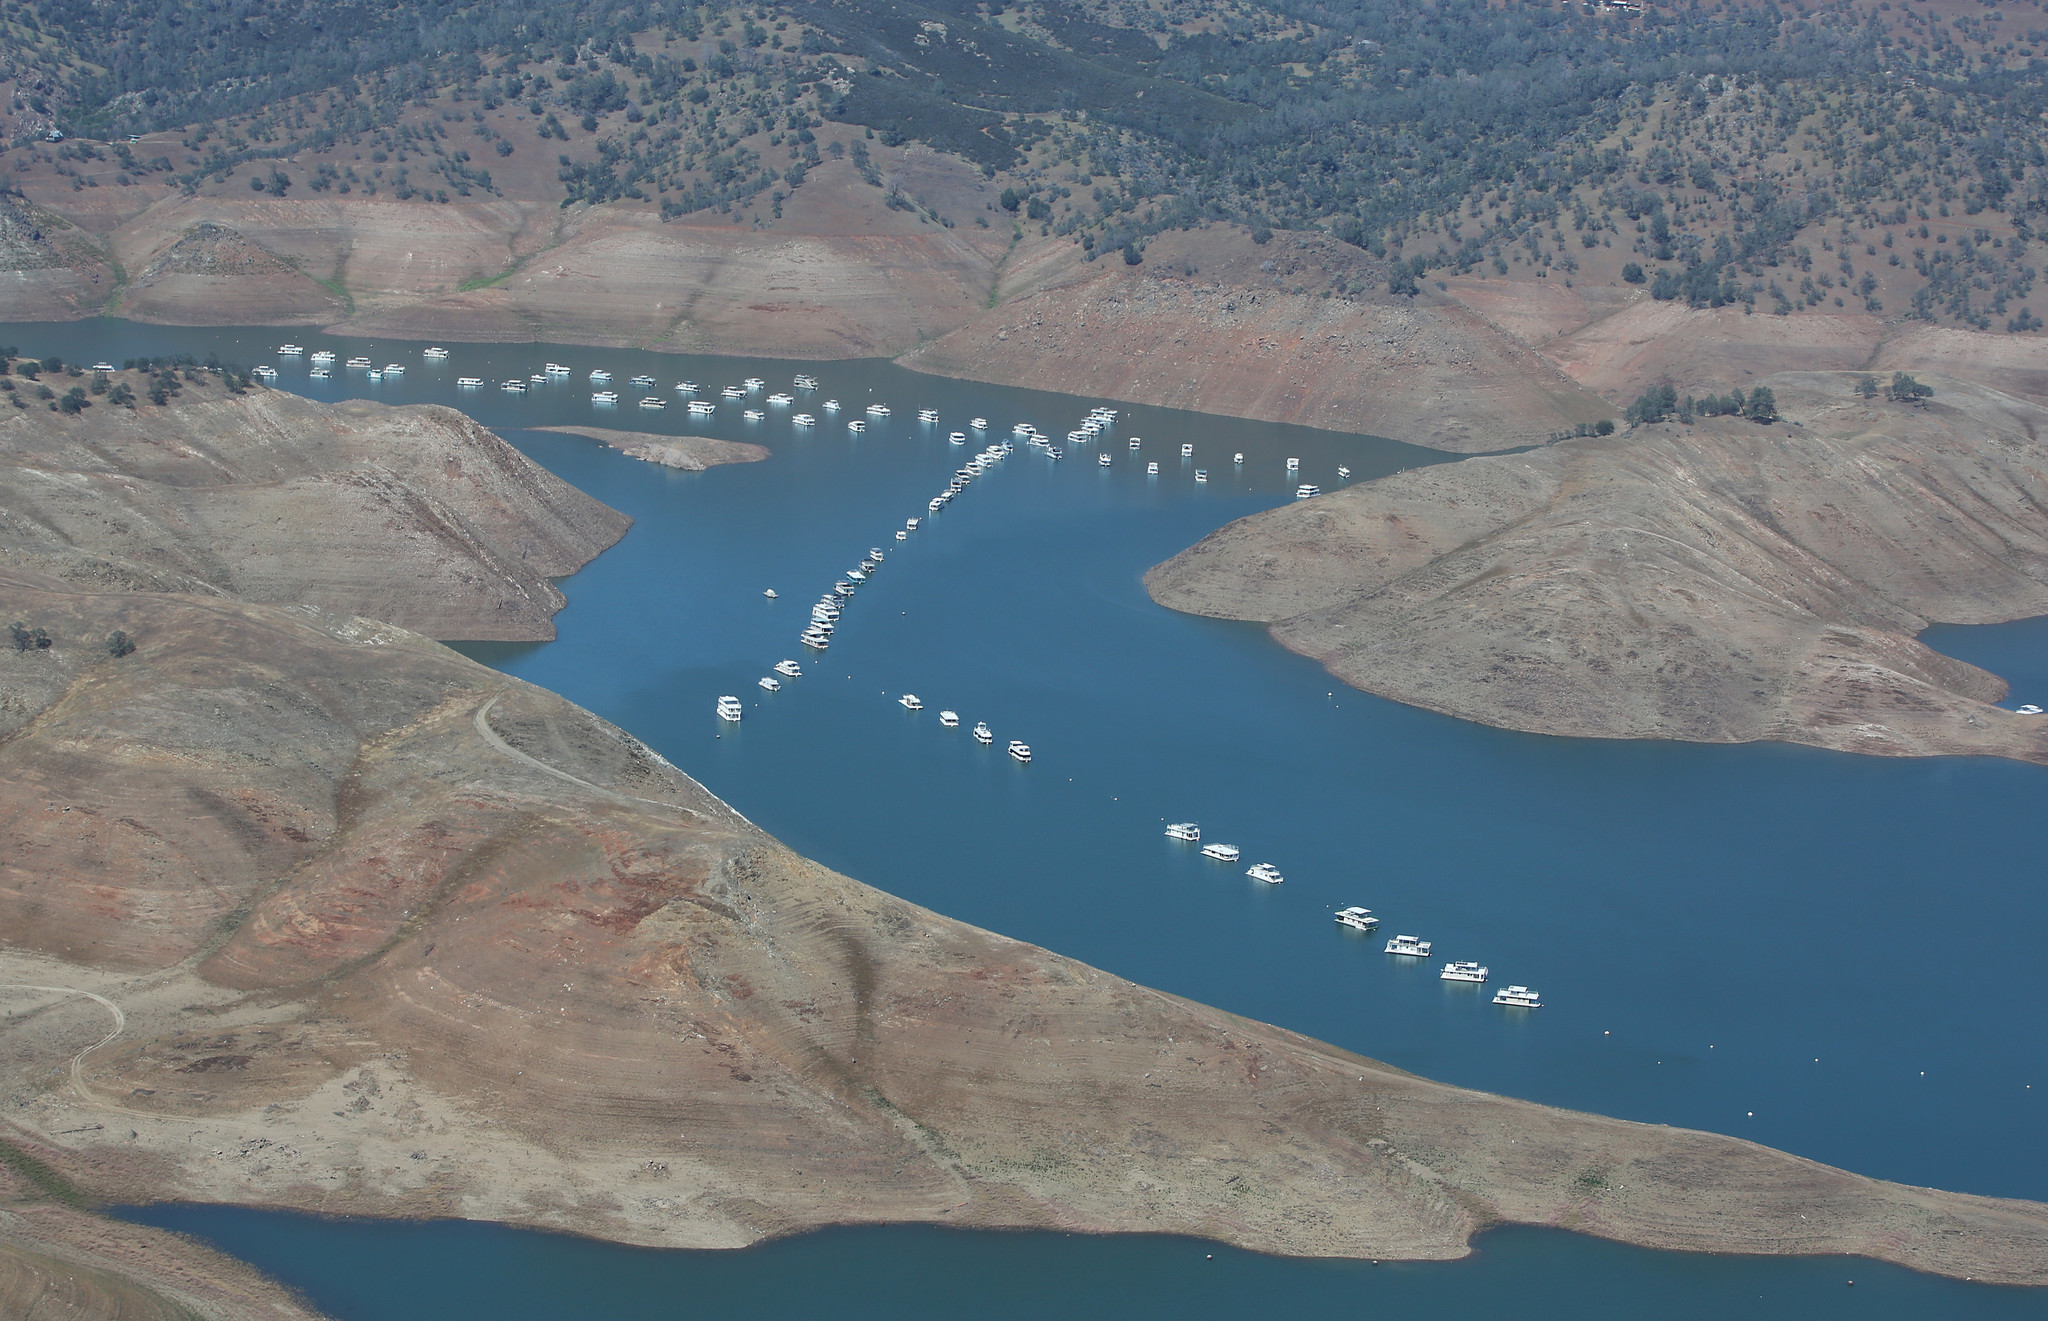 http://www.trbimg.com/img-557b2487/turbine/la-me-ln-drought-water-rights-20150612-001